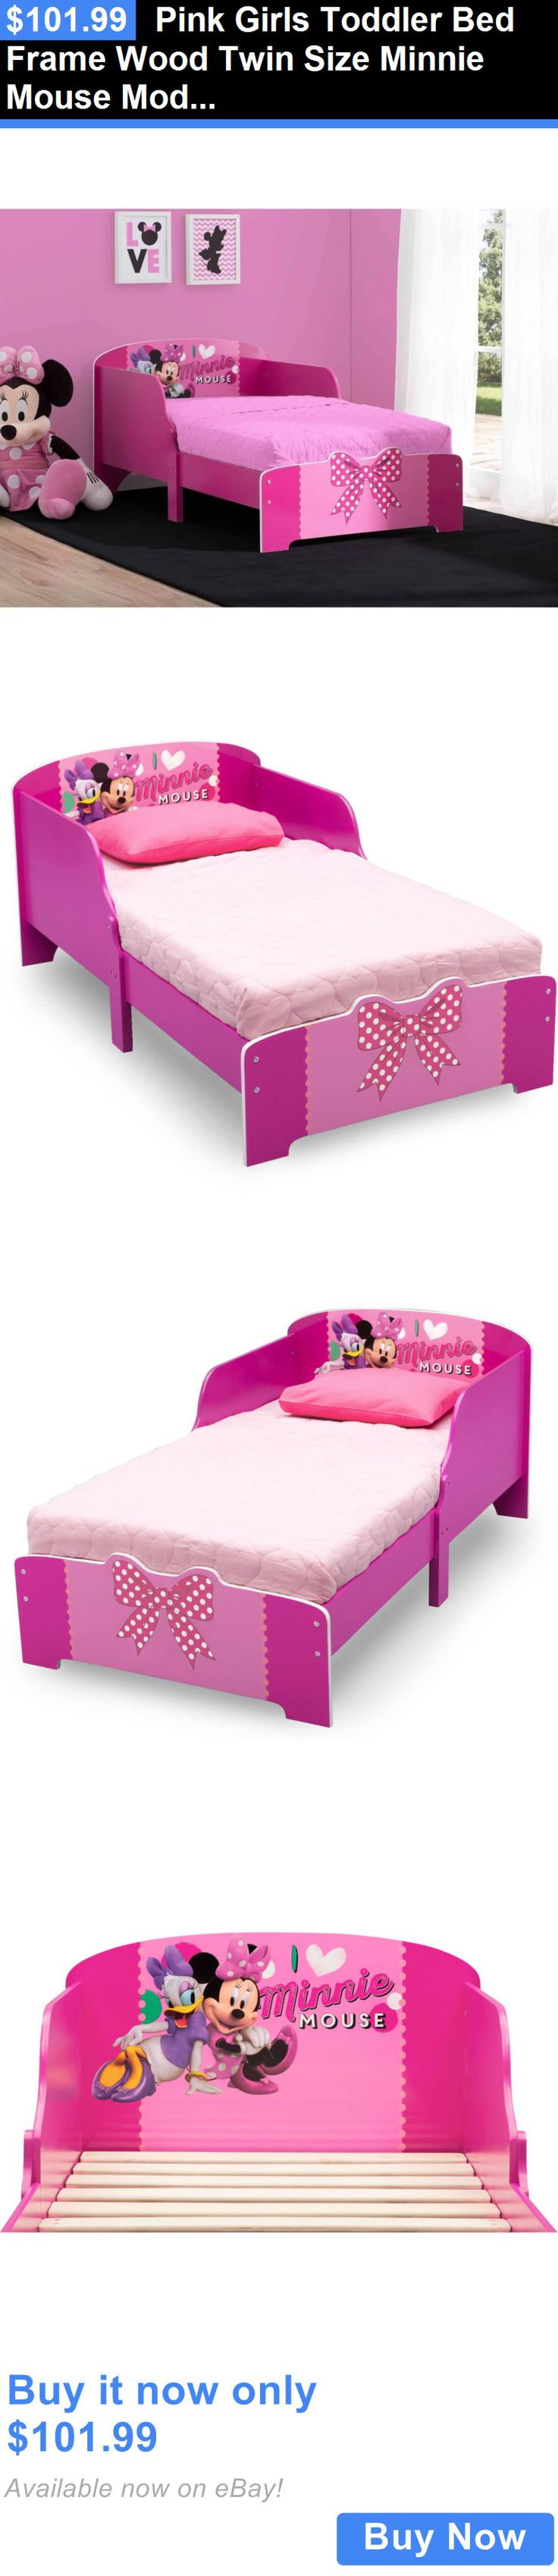 kids at home pink girls toddler bed frame wood twin size minnie mouse modern kids - Minnie Mouse Bed Frame